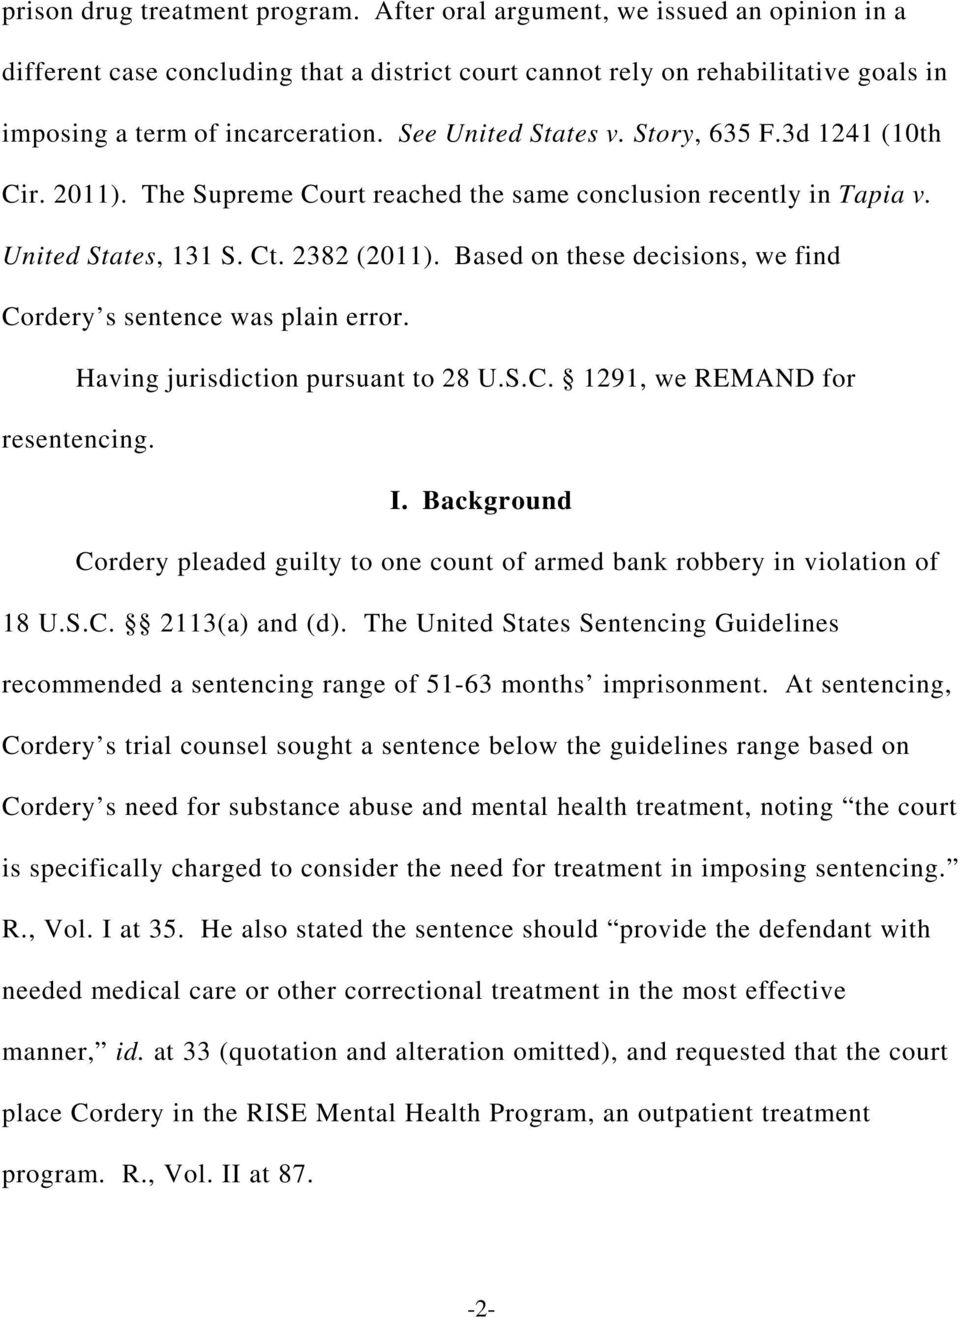 Based on these decisions, we find Cordery s sentence was plain error. Having jurisdiction pursuant to 28 U.S.C. 1291, we REMAND for resentencing. I.